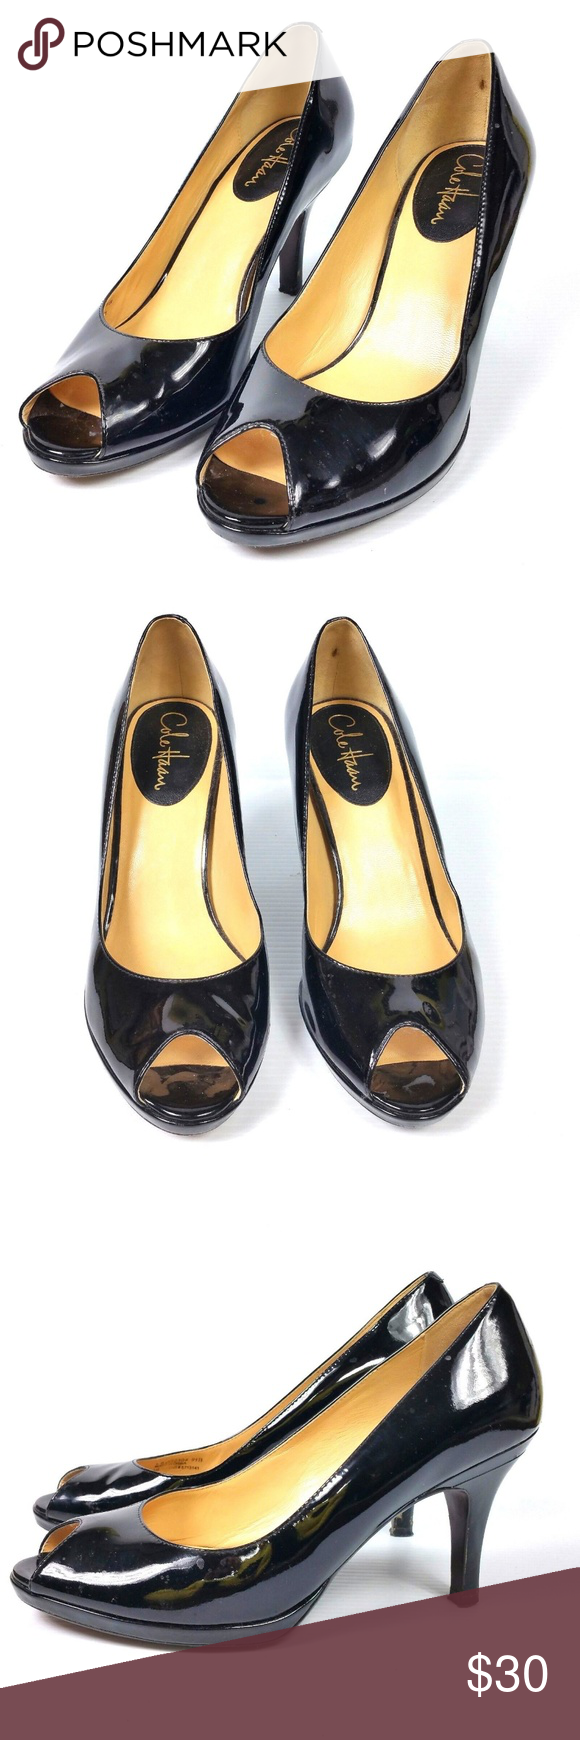 b41063f20c Cole Haan Air Carma Open Toe Pump 9.5 Black Heels Brand: Cole Haan / Nike